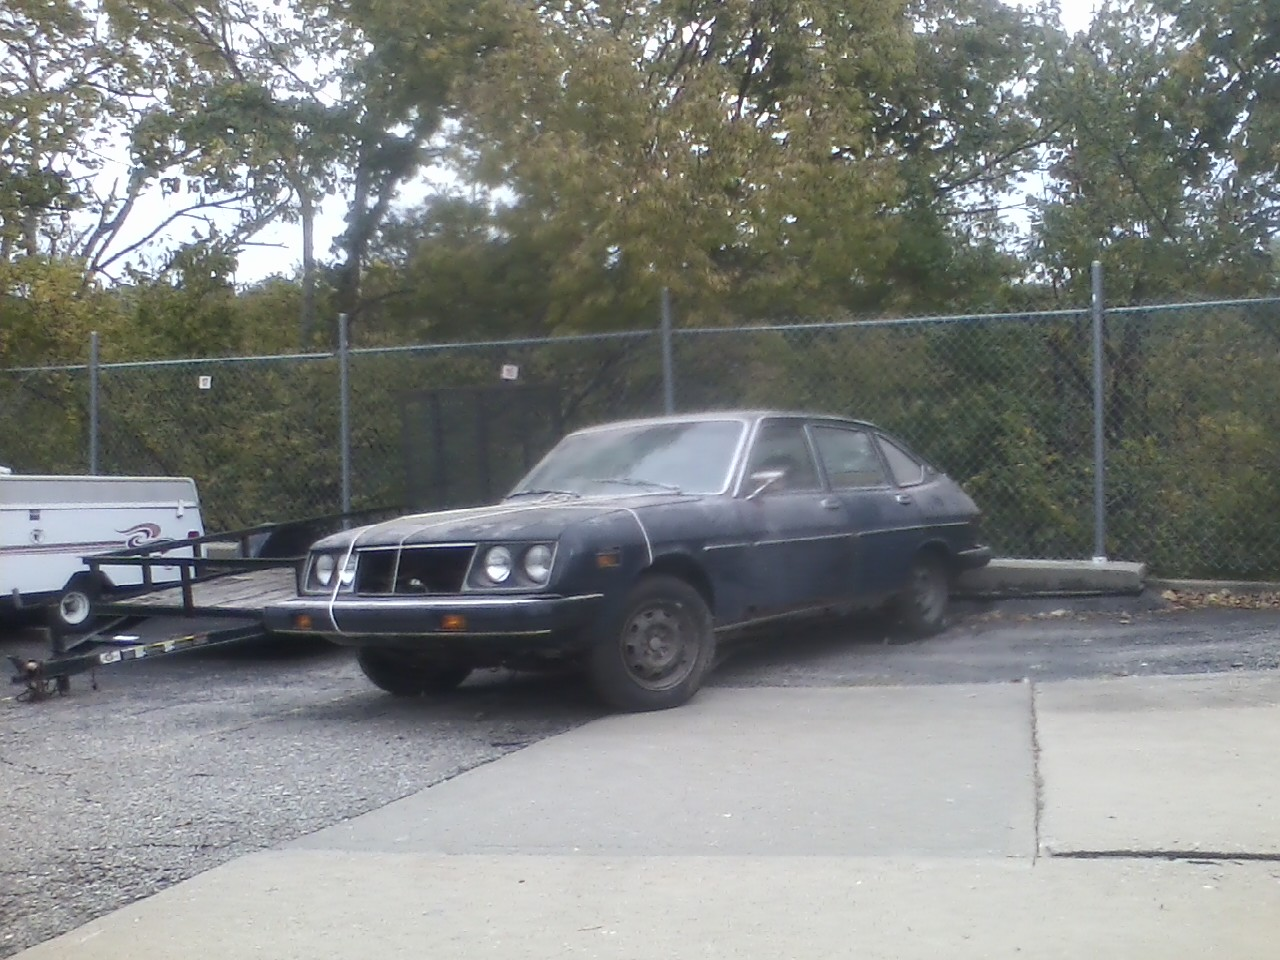 I just bought a new toy for 200 shes a 1975 lancia beta berlina shes a 1975 lancia beta berlina and shes the definition of a barn find these things are unicorns here in the us vanachro Images